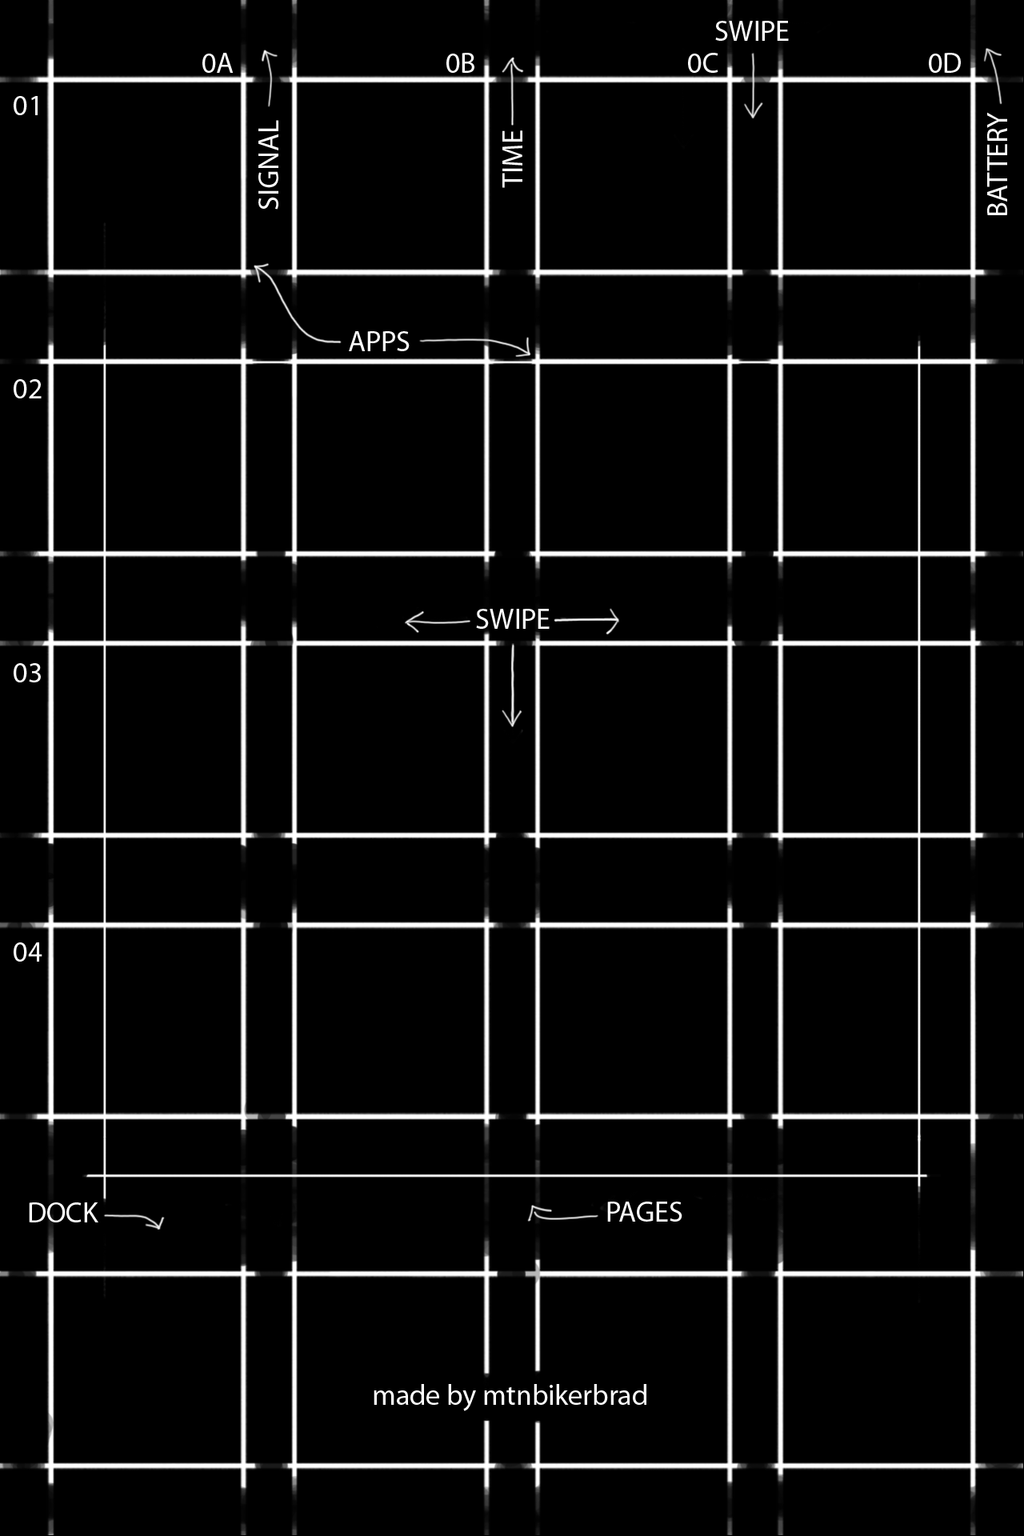 Best Iphone Blueprint Wallpaper - blackprint___flat_ios7_wallpaper_by_mtnbikerbrad-d6mul85  Image_821124.png